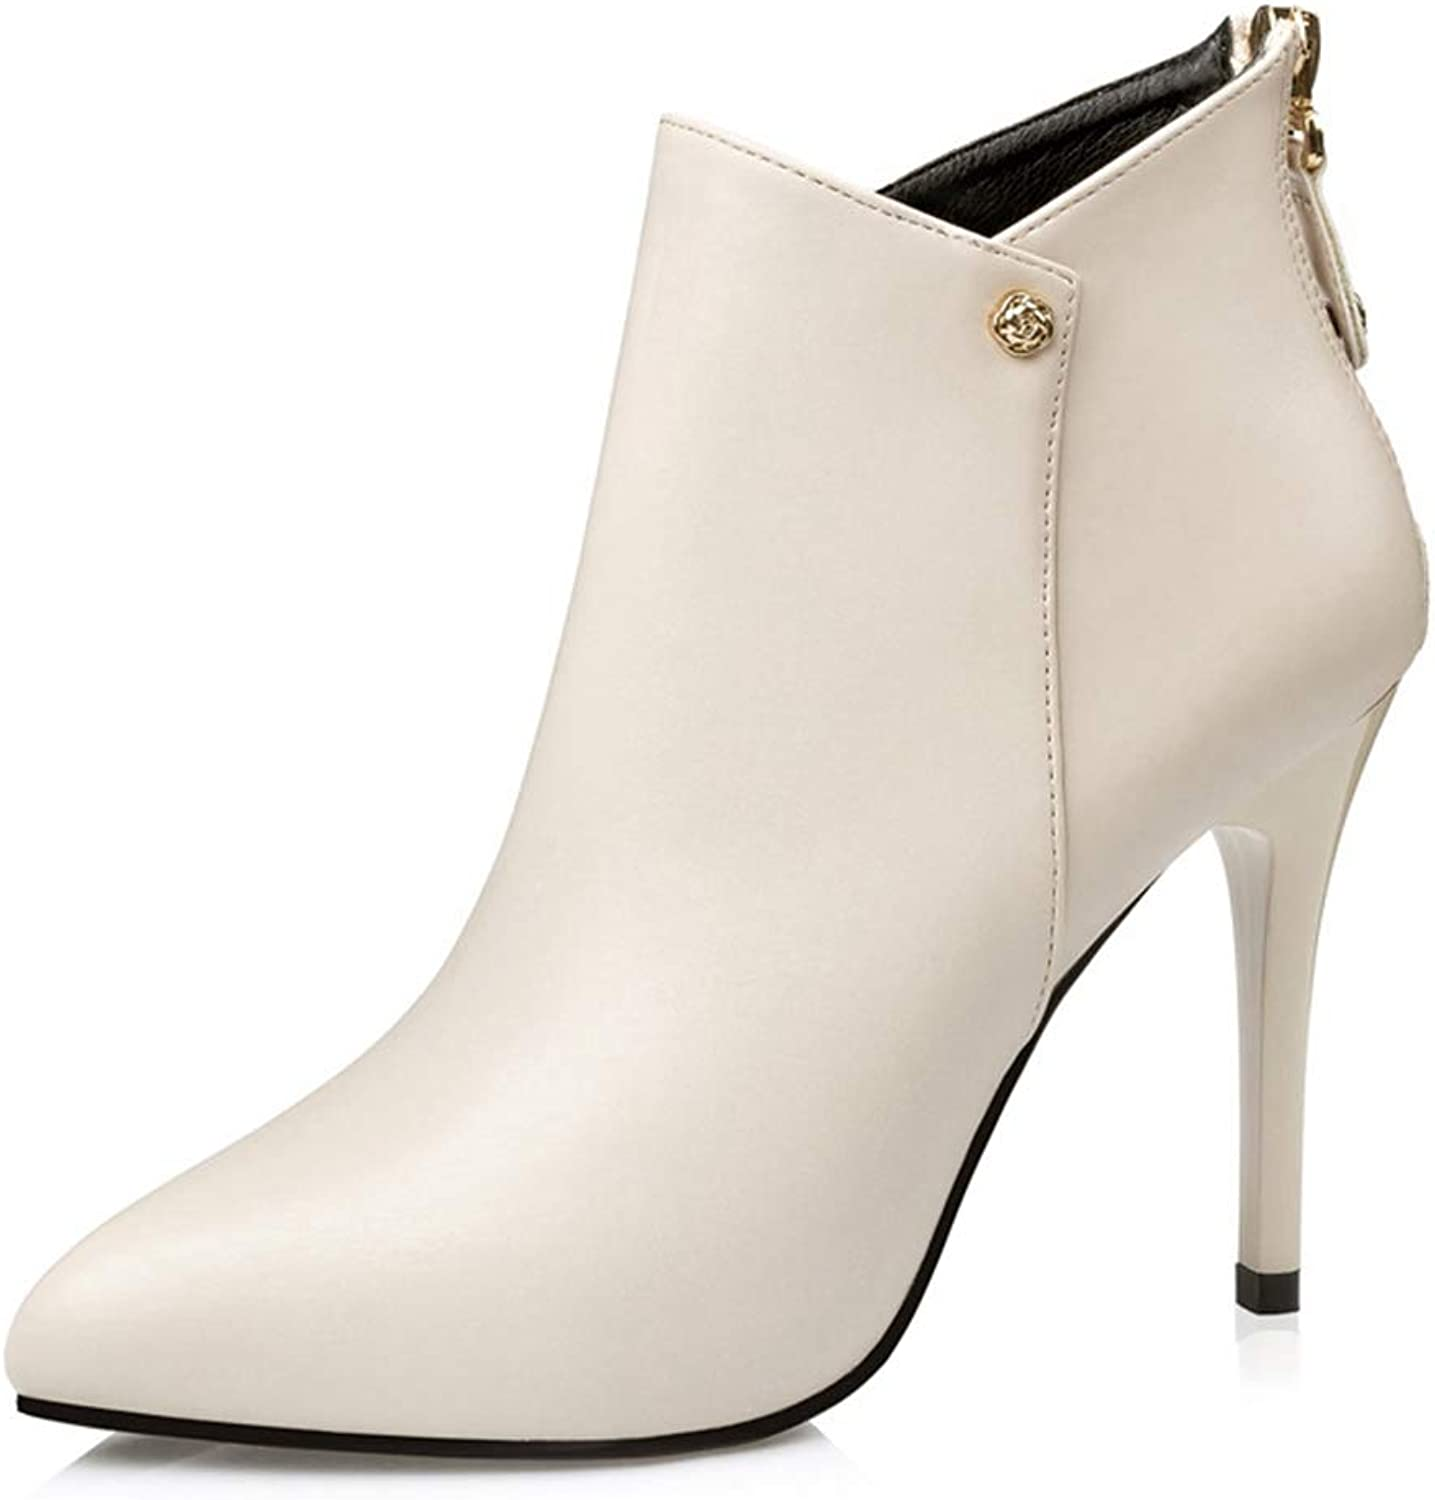 CYBLING Women's Stiletto High Heel Ankle Booties PU Leather Back Zip Sexy Pointed Toe Martin Boots